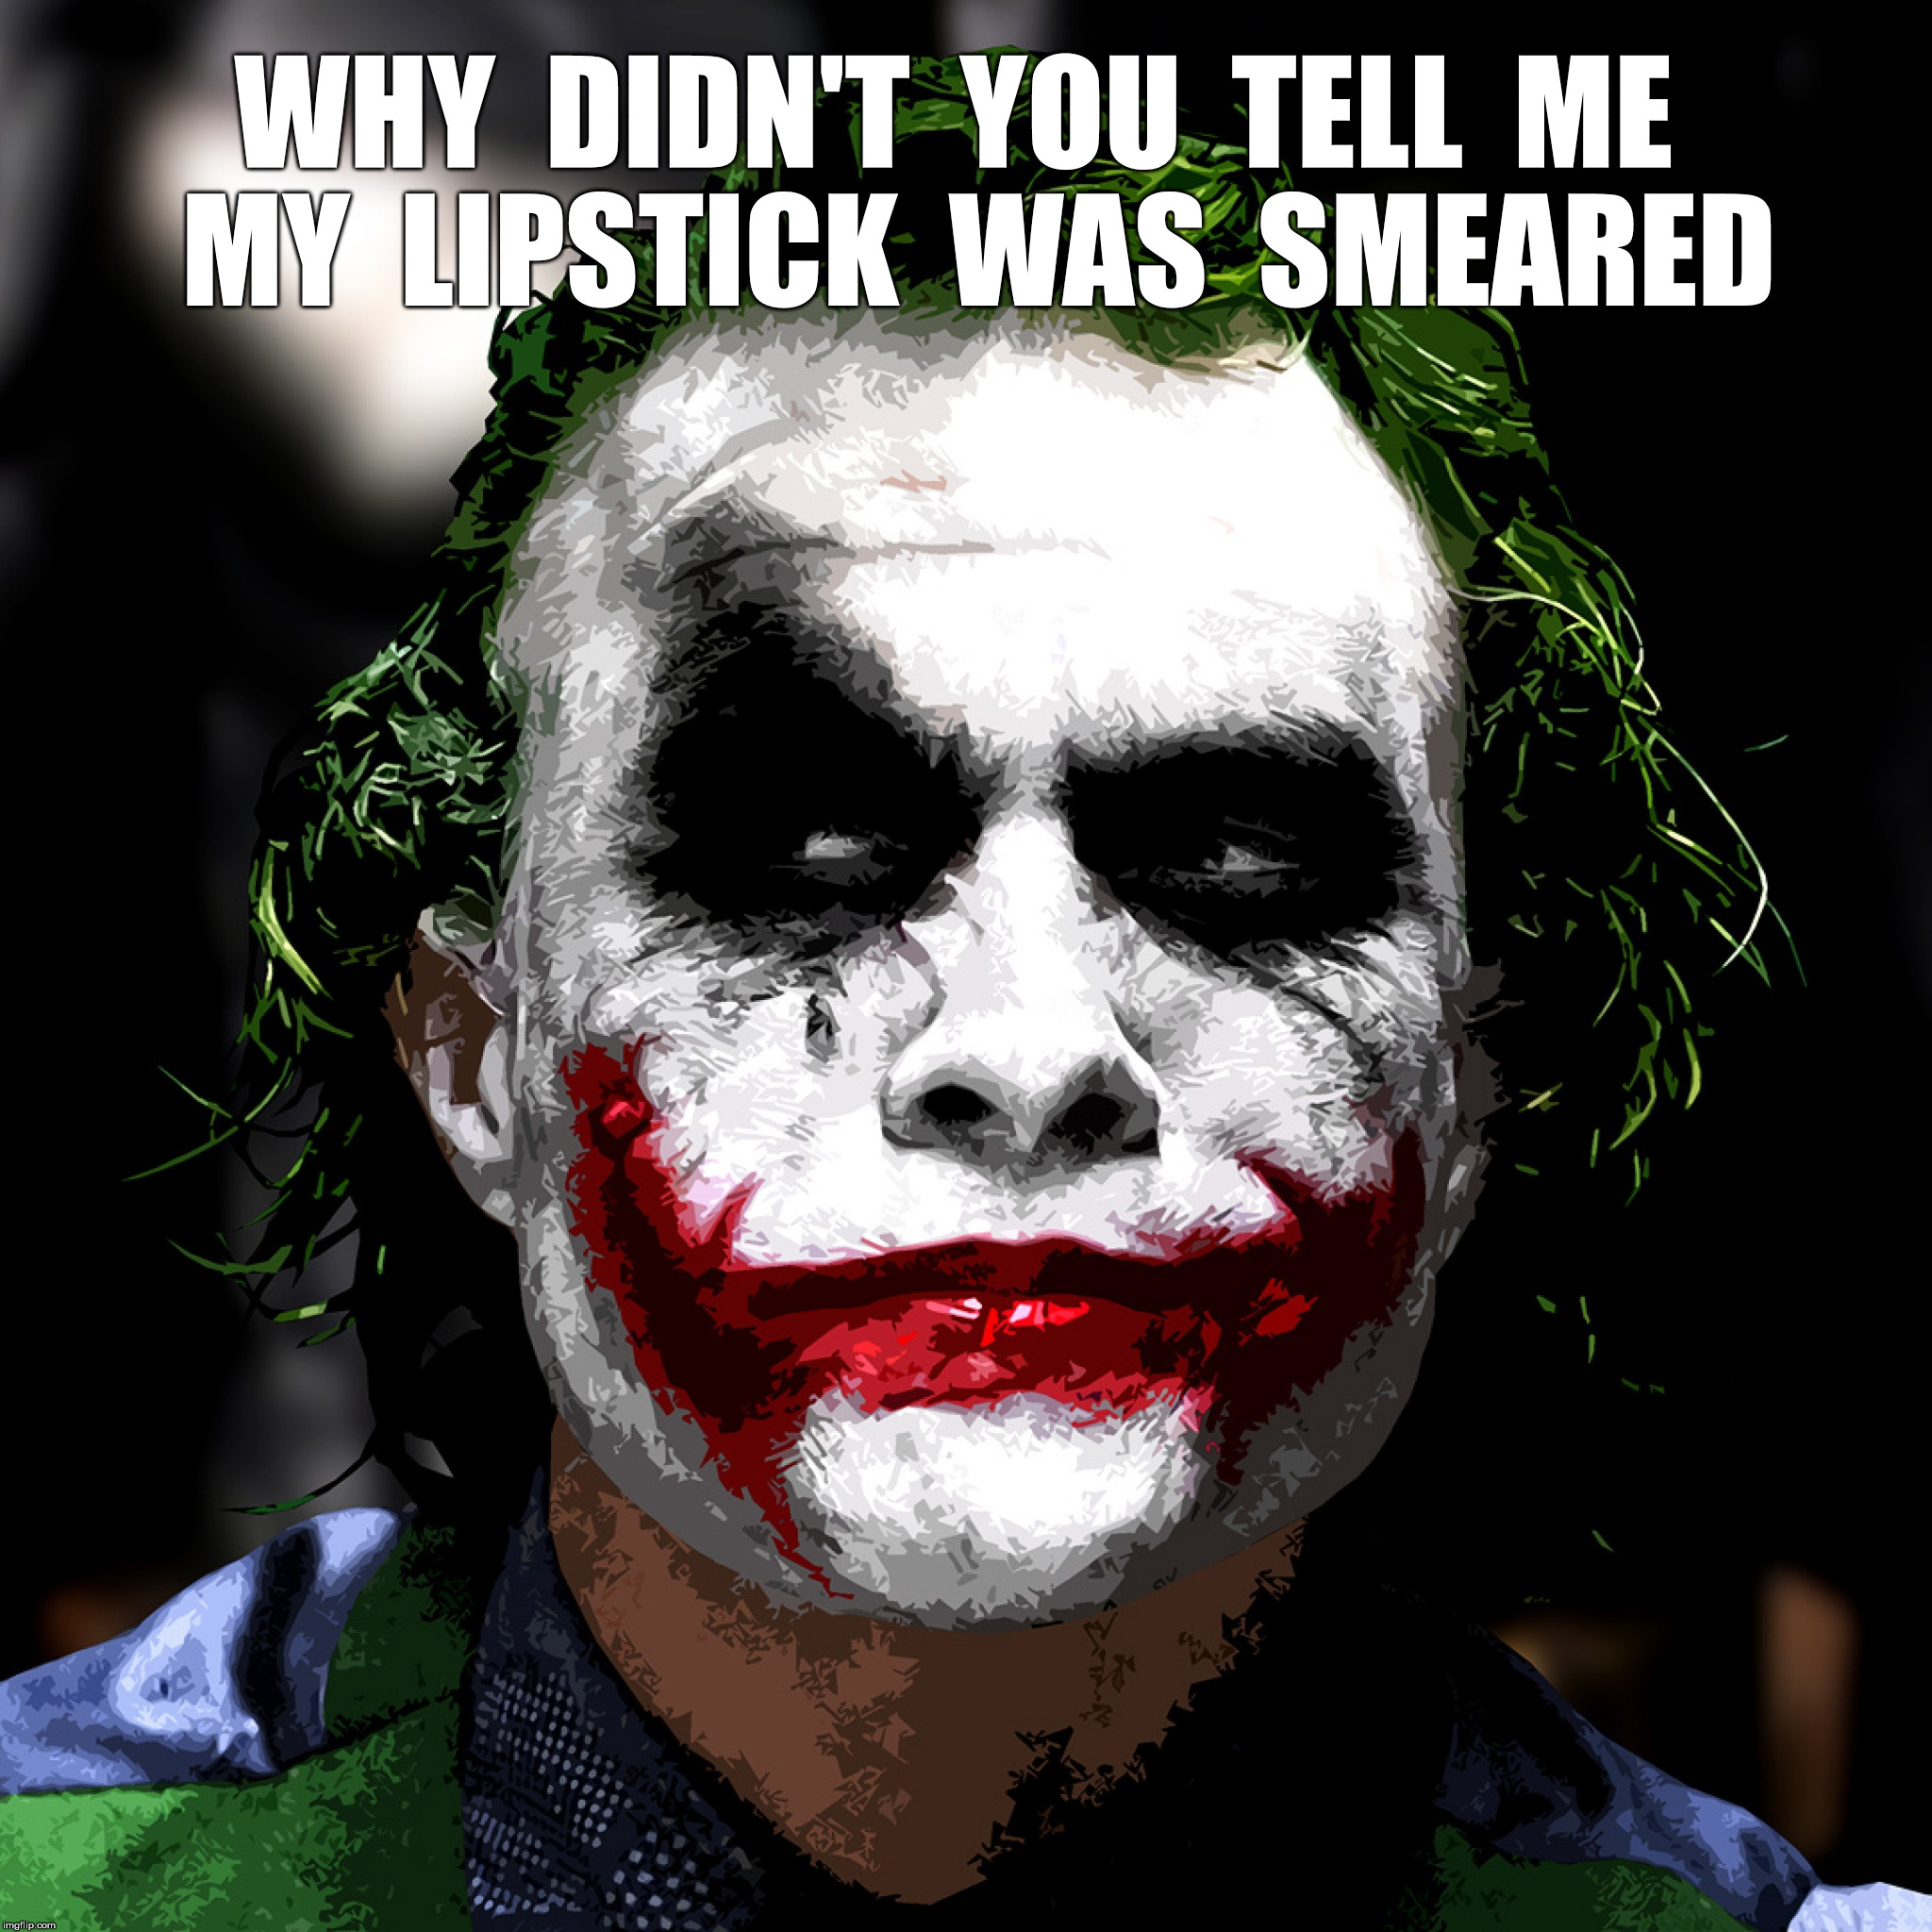 Does My Makeup Look Okay? | WHY  DIDN'T  YOU  TELL  ME  MY  LIPSTICK  WAS  SMEARED | image tagged in joker,lipstick,makeup | made w/ Imgflip meme maker